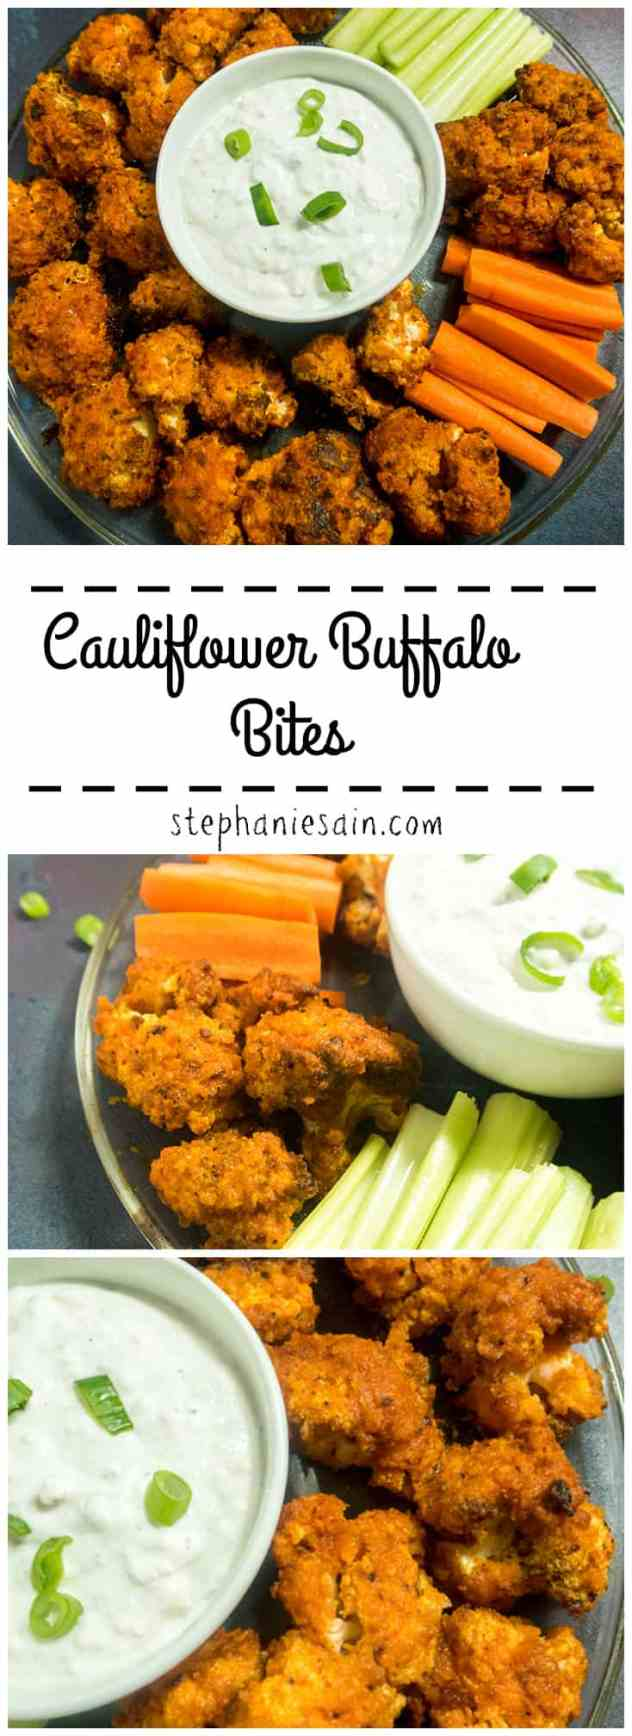 Cauliflower Buffalo Bites are a tasty, healthy vegetarian option for buffalo wings. Easy to prepare with only a couple ingredients. Gluten Free.